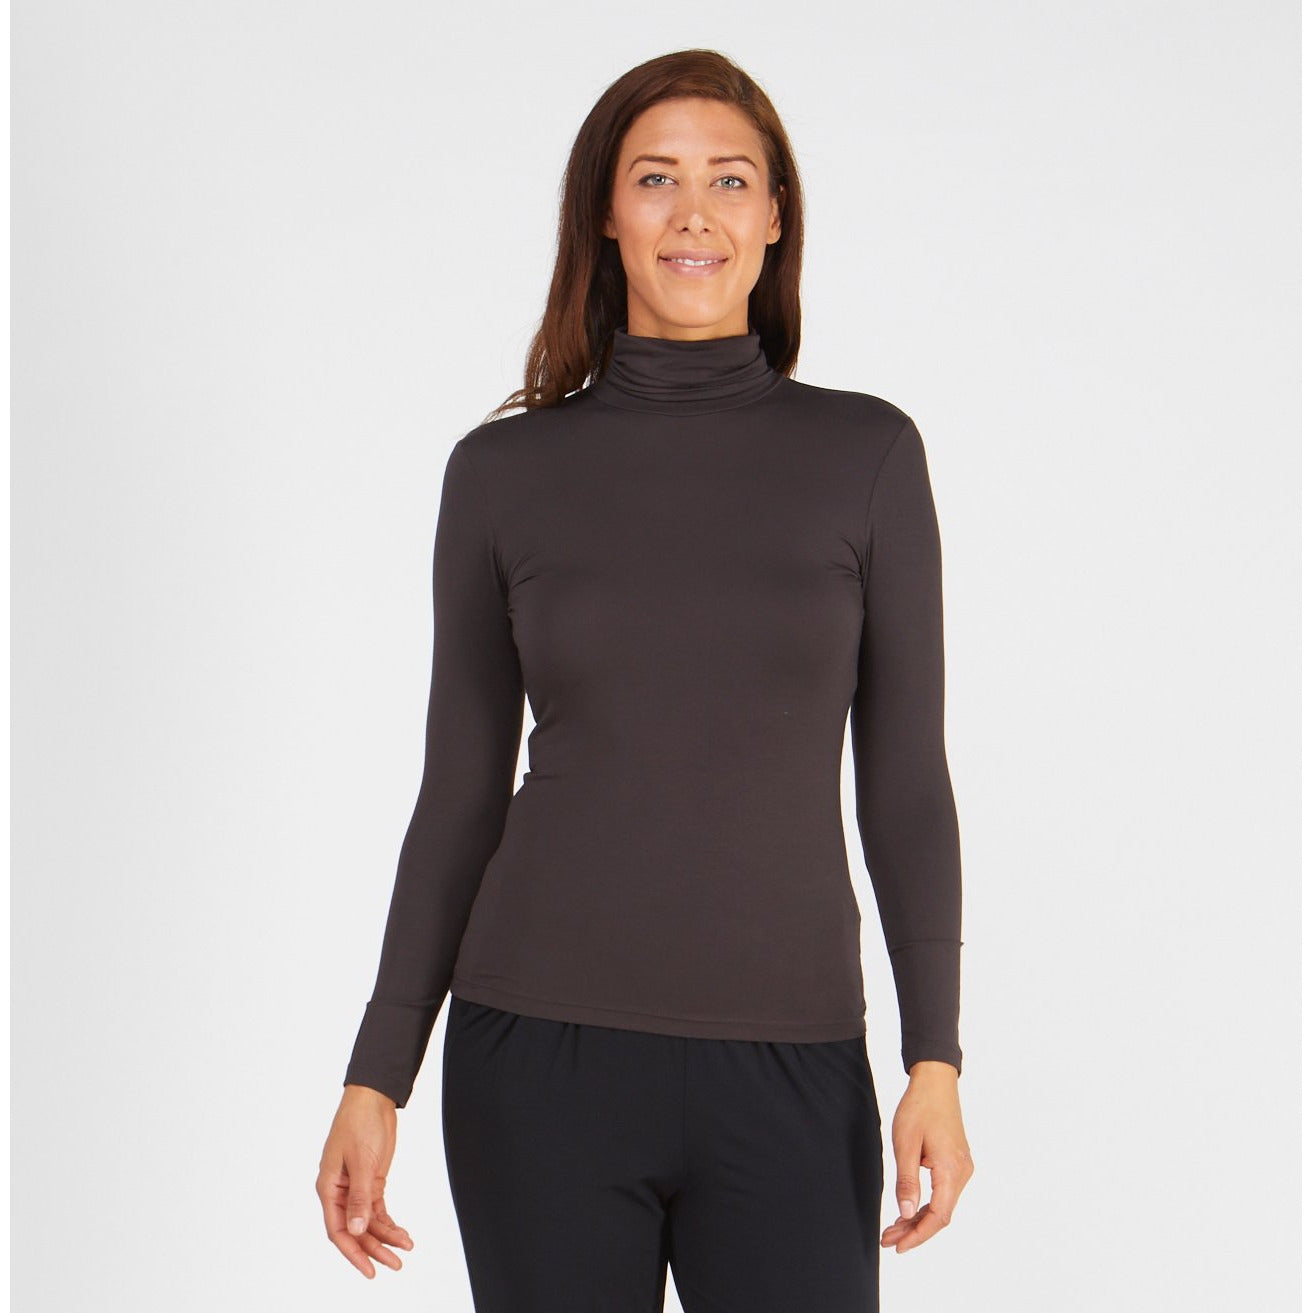 Tani Long Sleeve Turtle Neck Top in Plain colours